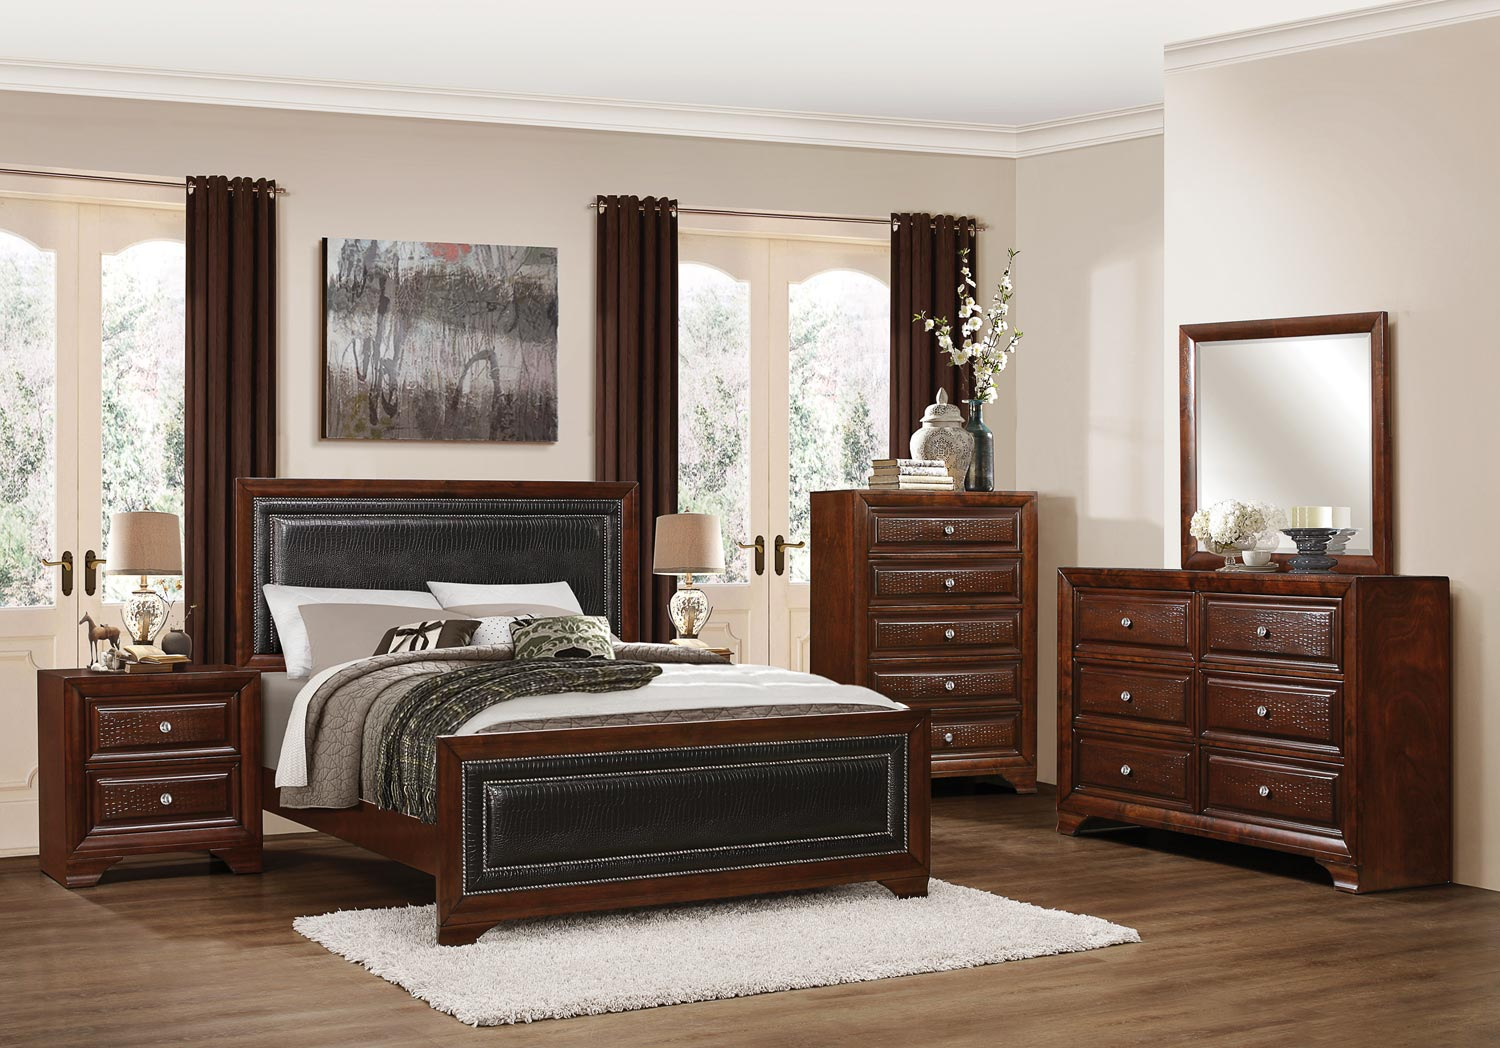 Homelegance Owens Panel Bedroom Set - Warm Cherry